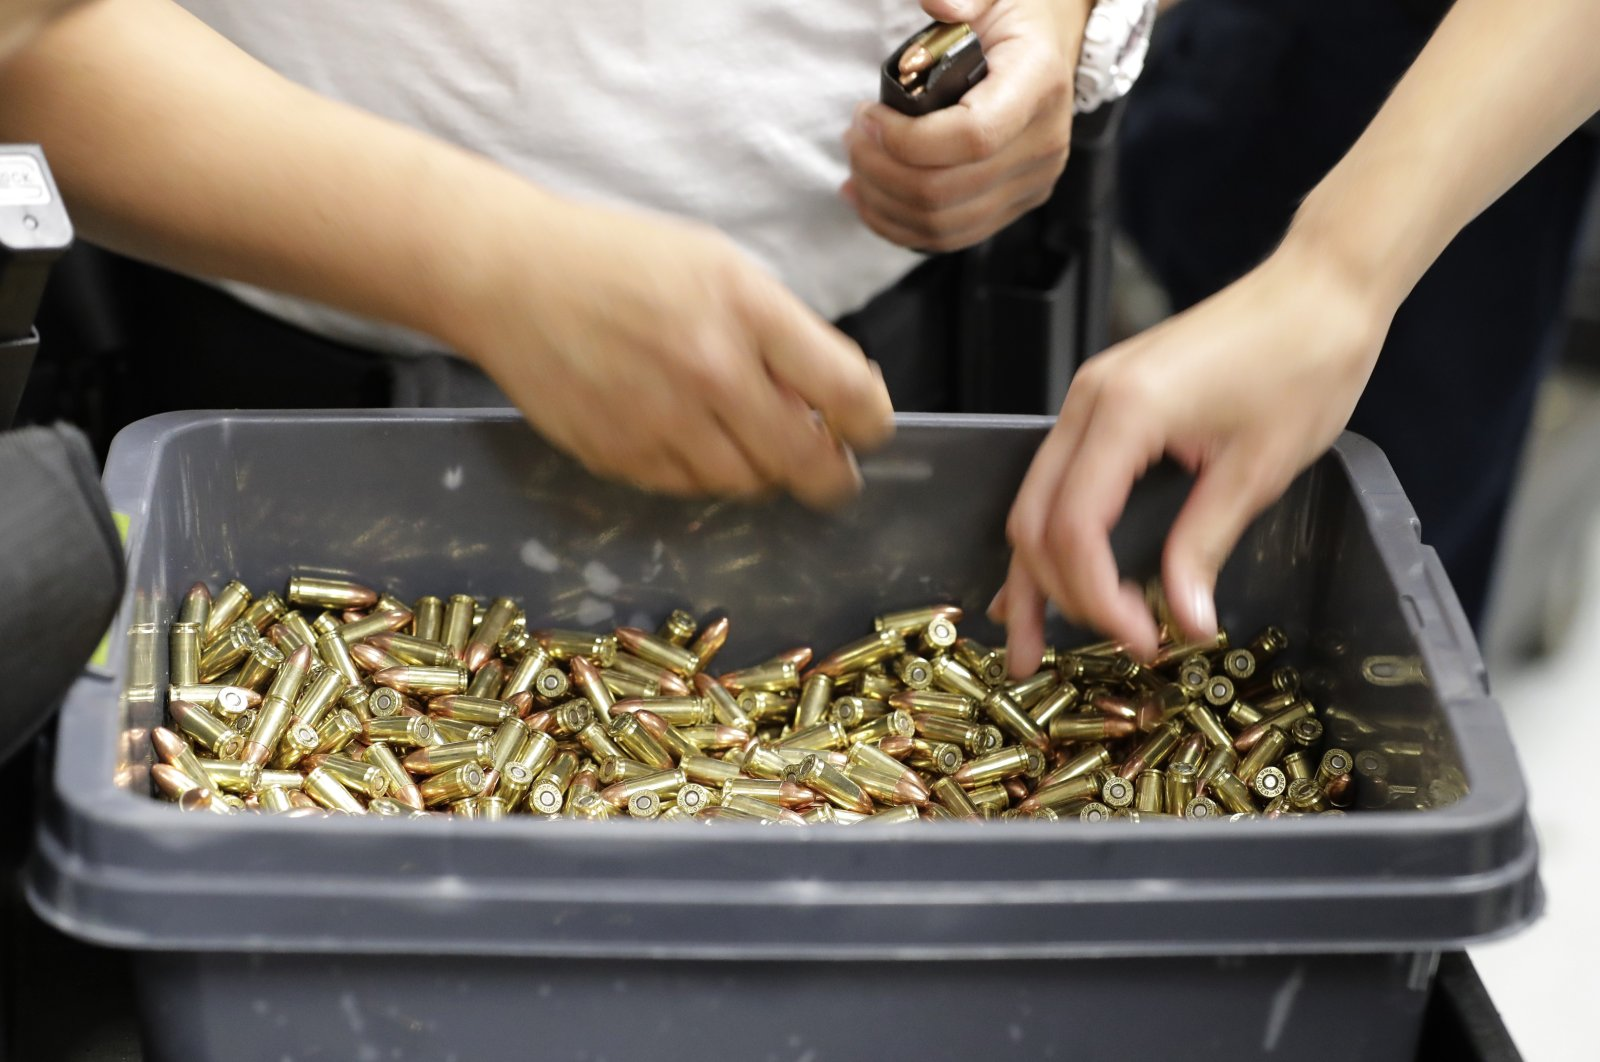 Officers taking part in training load gun clips with ammunition at the Washington State Criminal Justice Training Commission in Burien, Washington, U.S., July 16, 2019. (AP Photo)